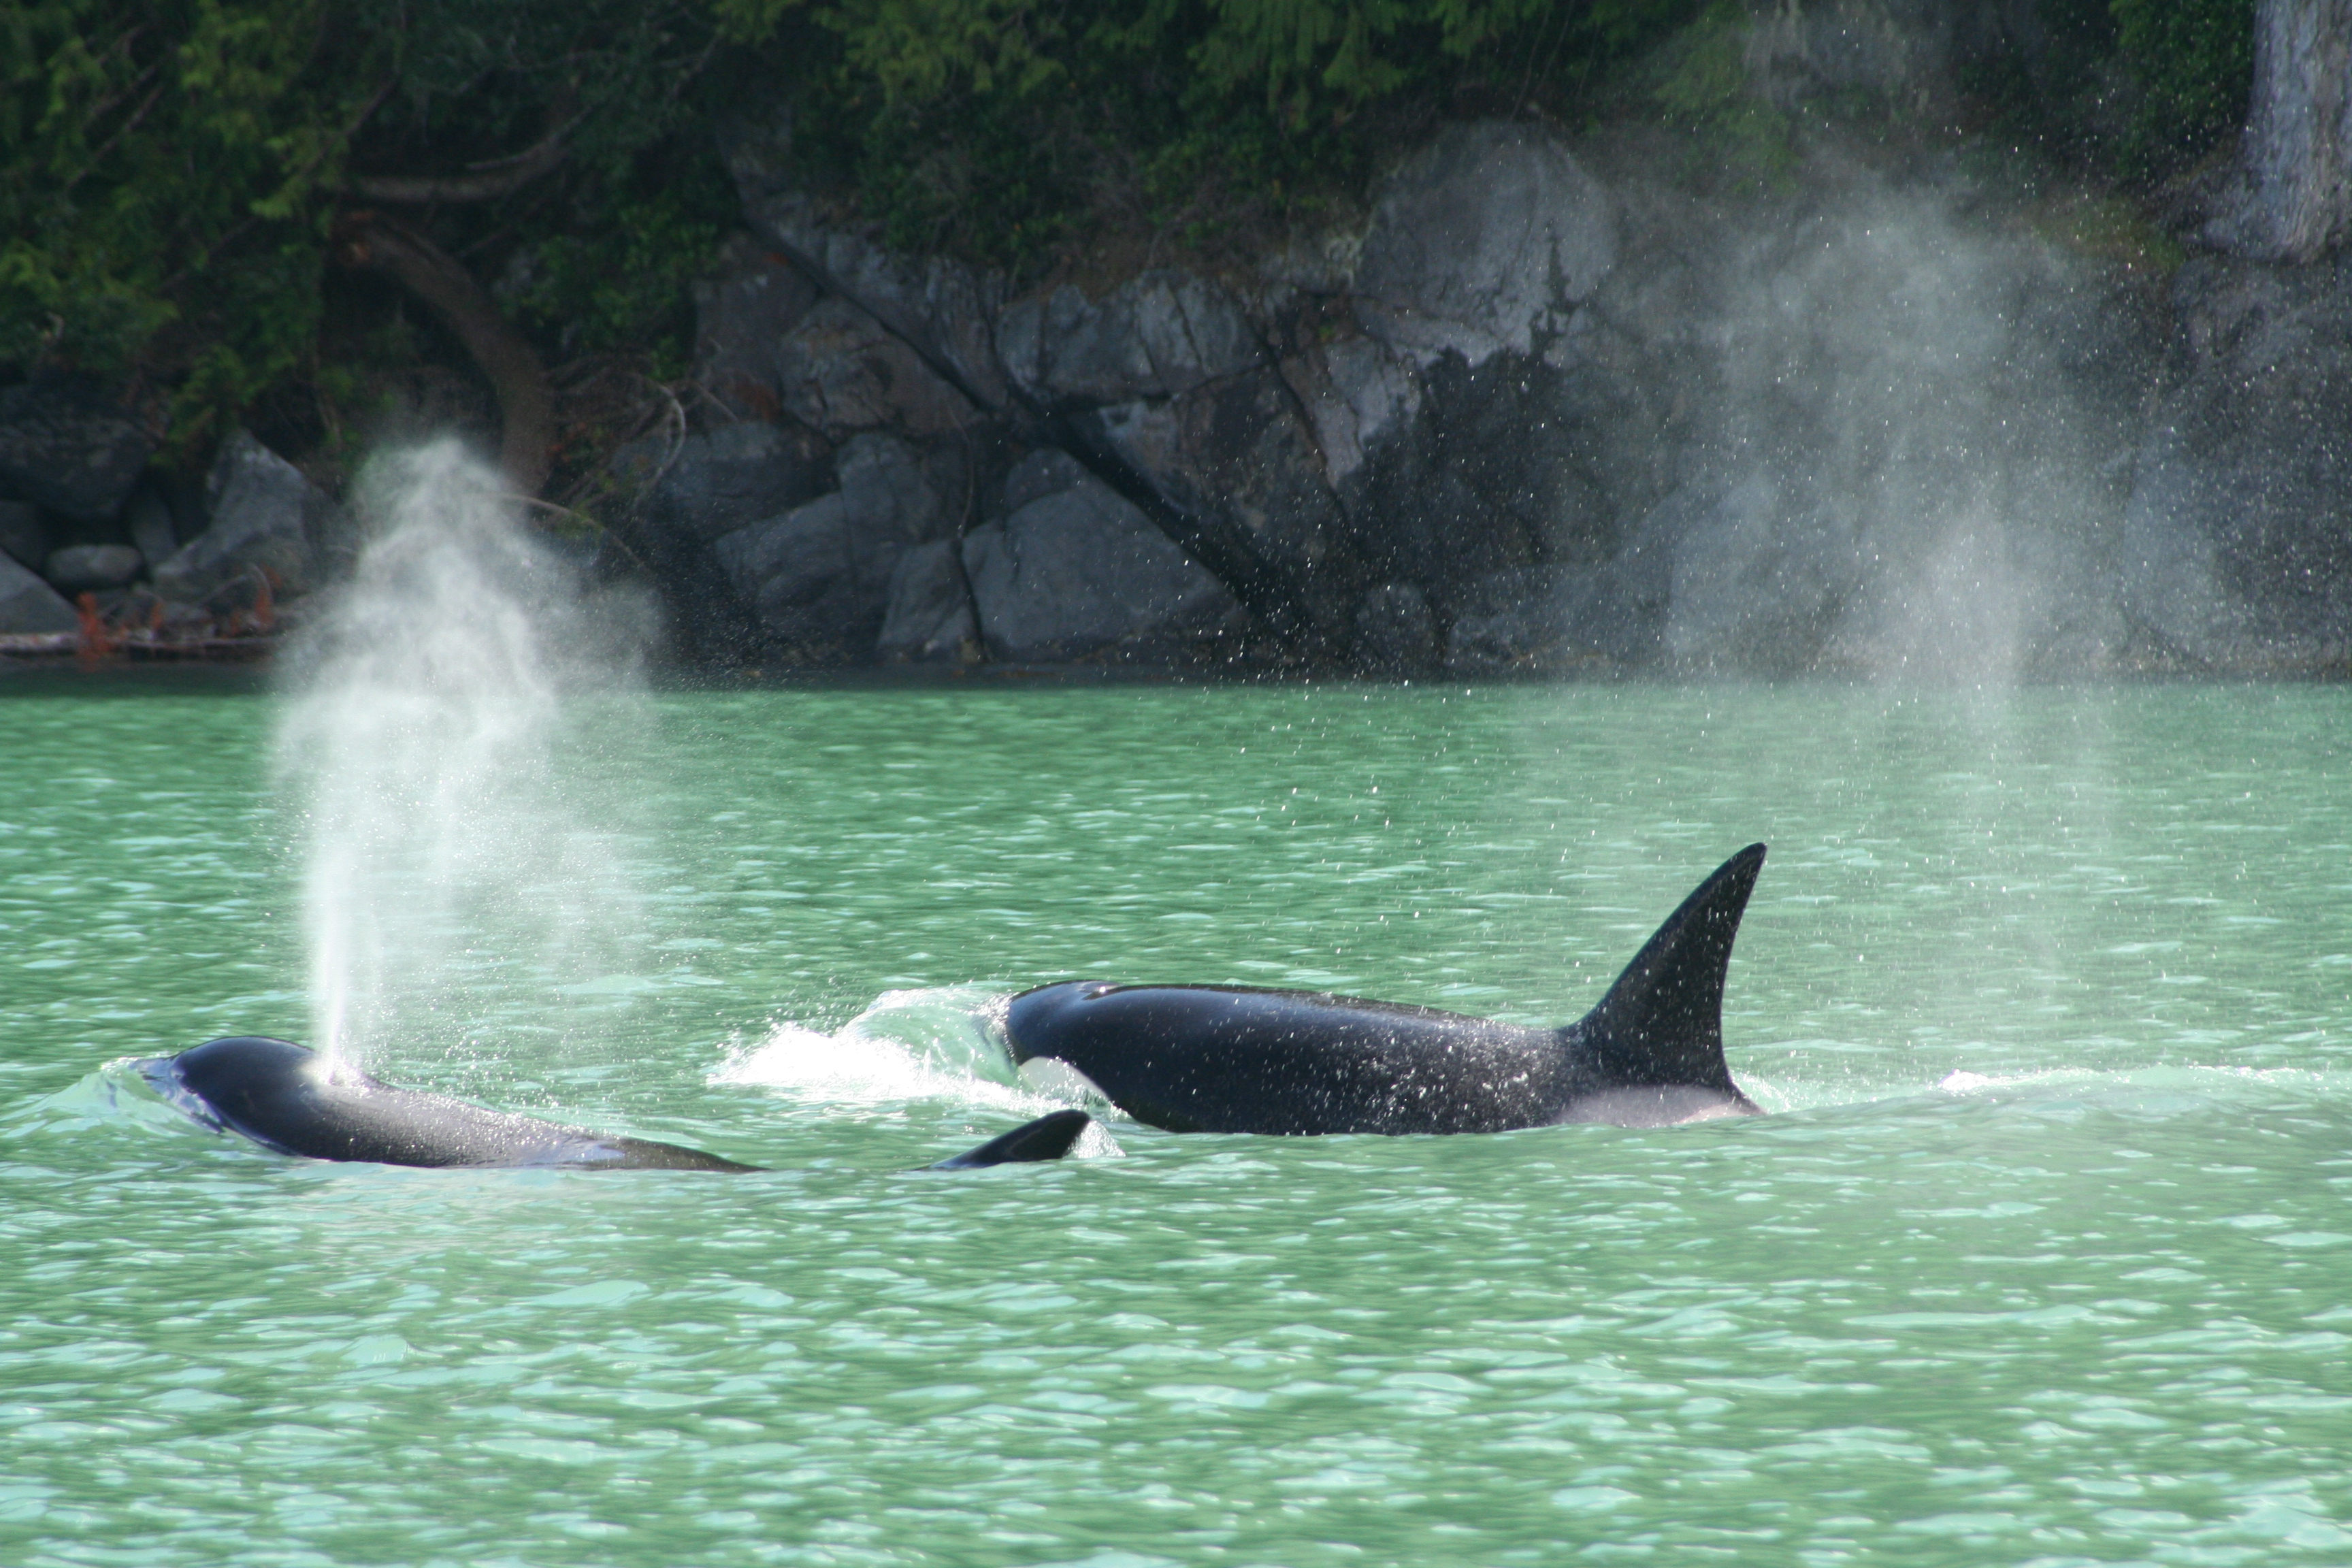 types of whales: orcas and glacial waters